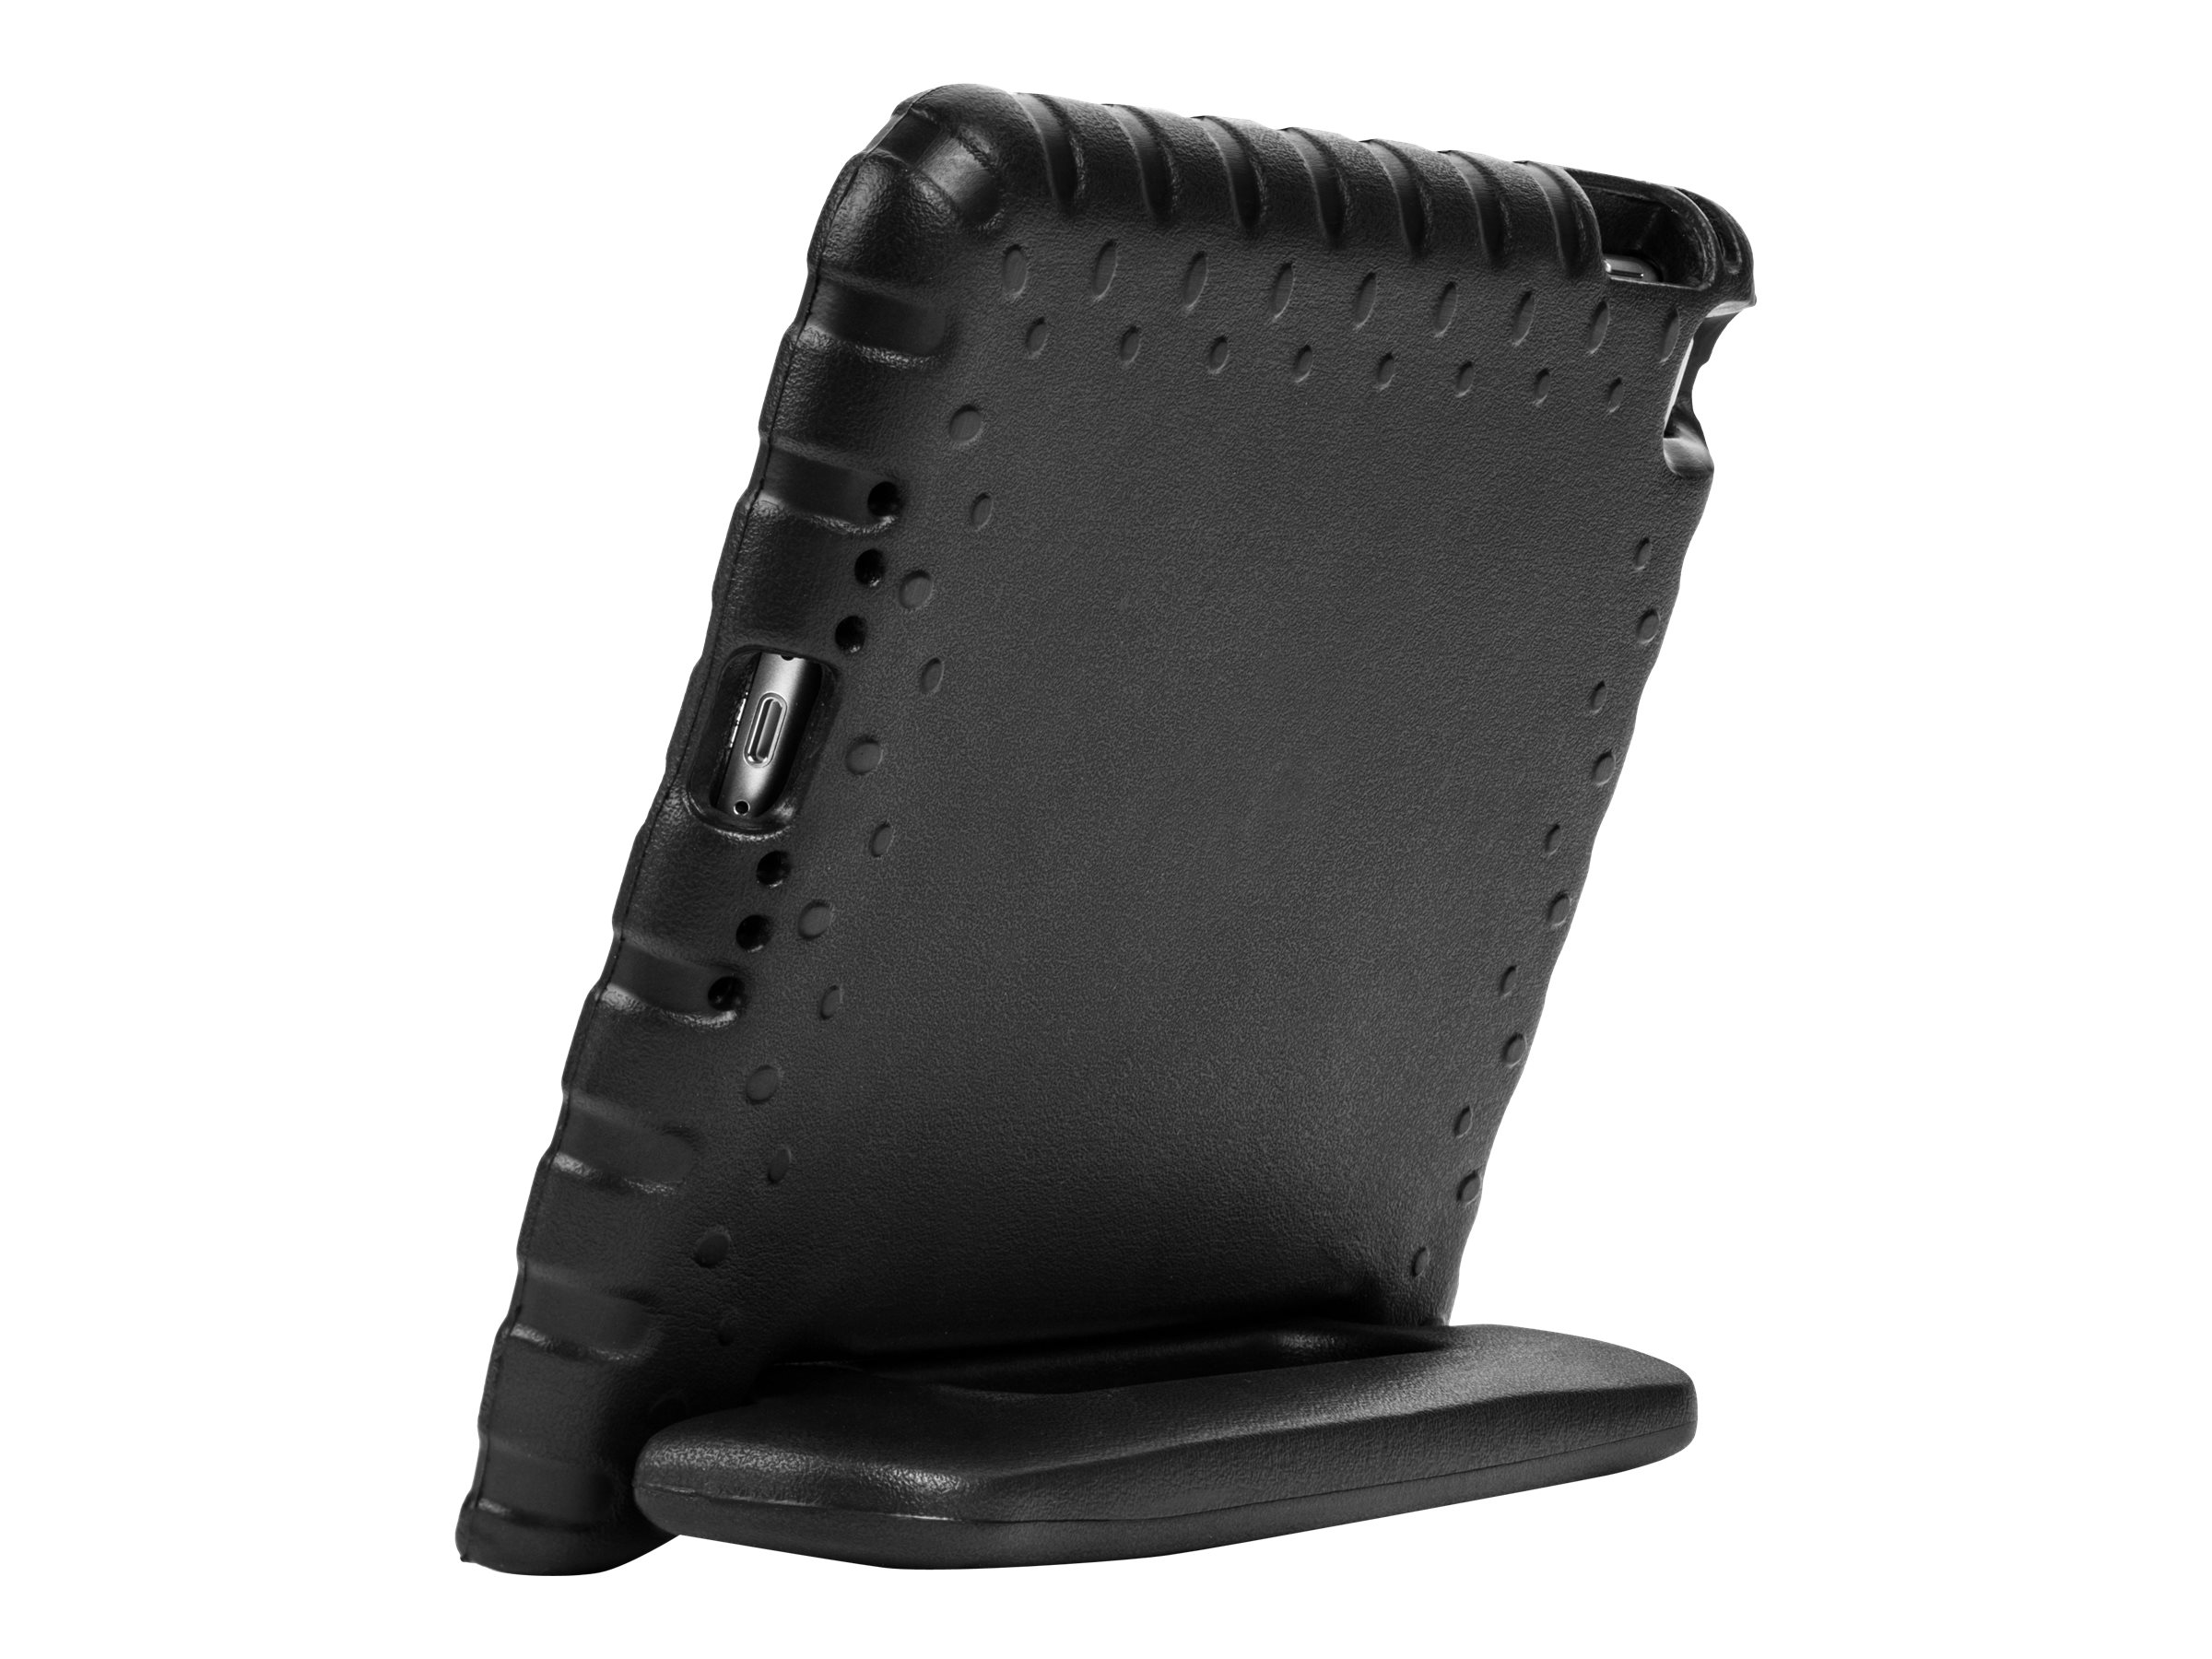 Kensington SafeGrip Rugged Case & Stand for iPad mini 4, K97444WW